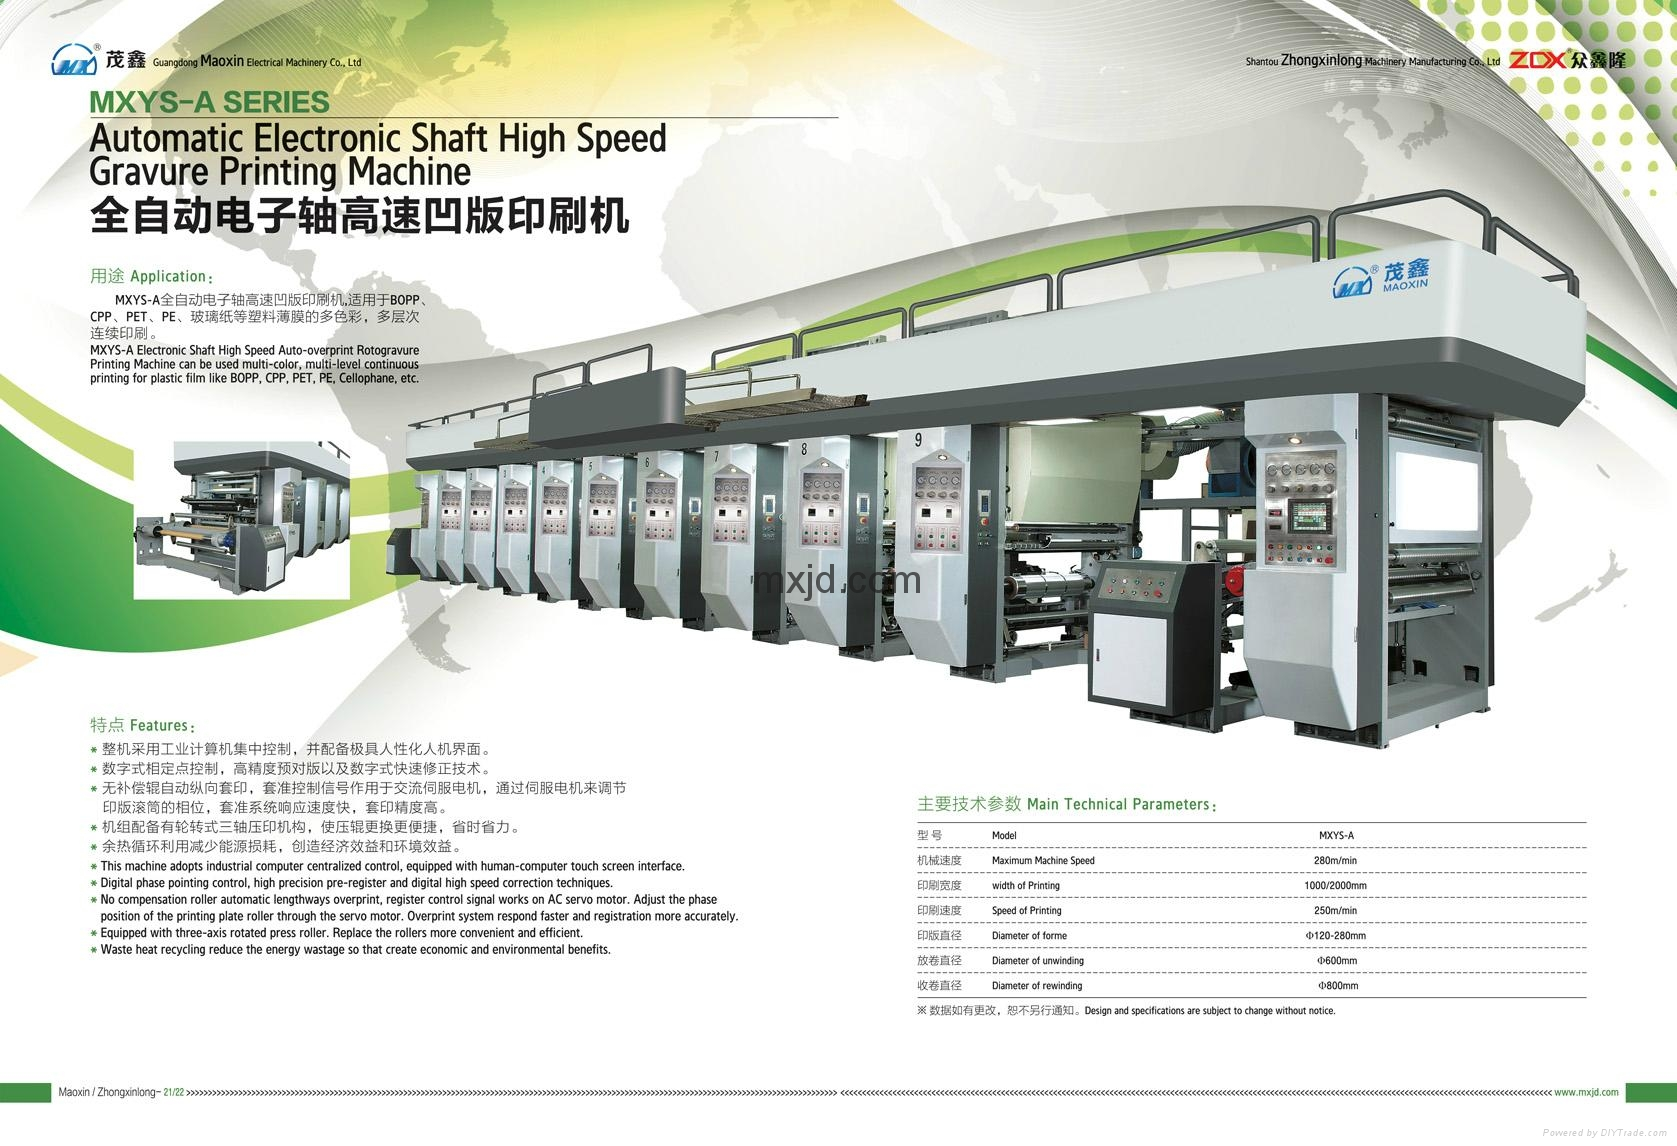 Automatic Electronic Shaft High Speed Gravure Printing Machine 2